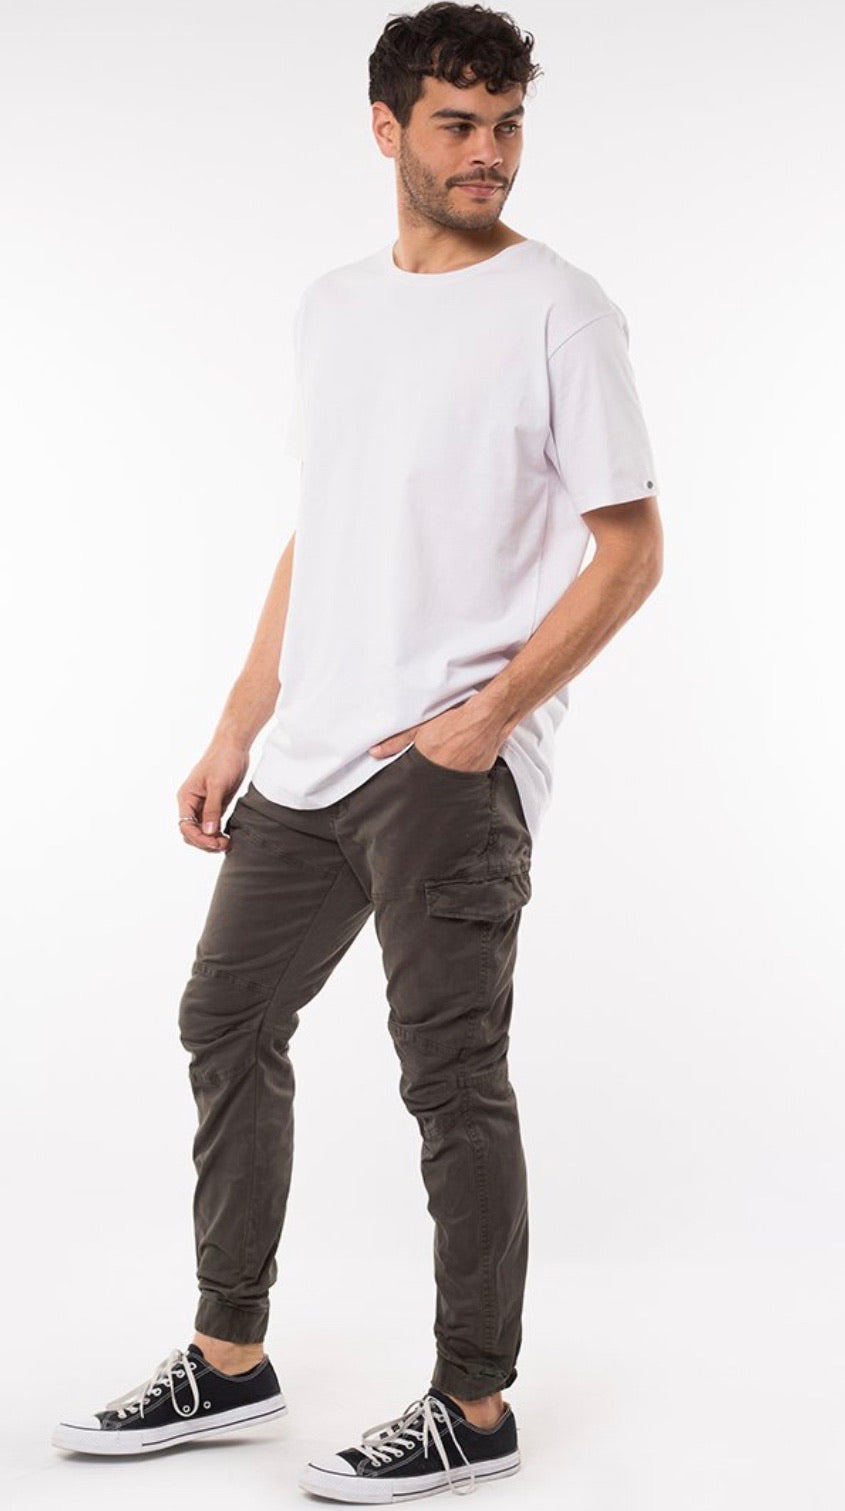 SILENT THEORY - nomad pant